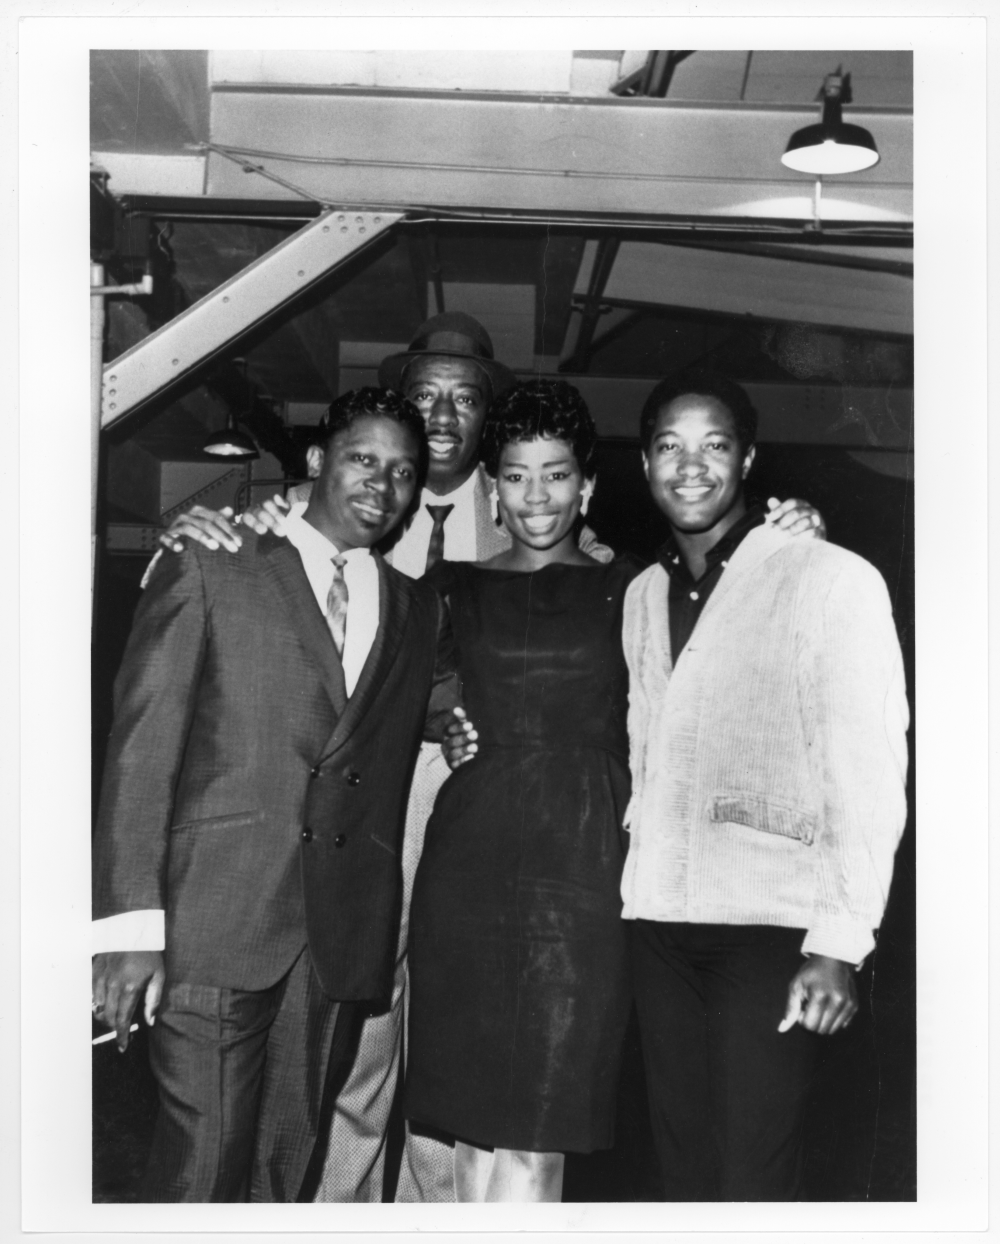 KYOK deejay George Nelson with Sam Cooke and B.B. King